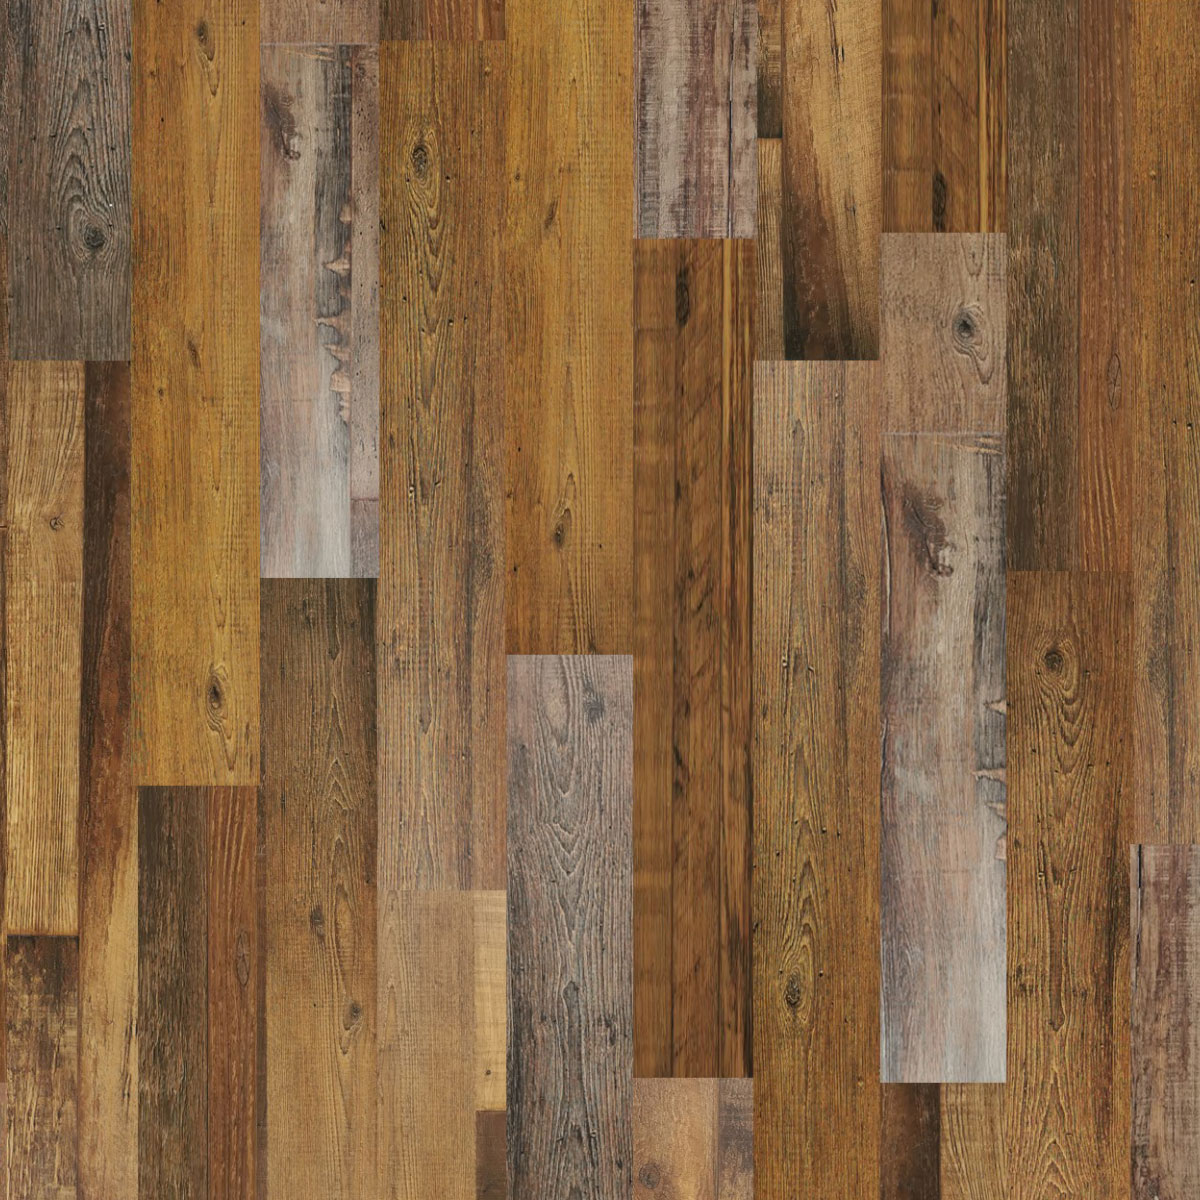 Universal Flooring Supply Valley Forge, Valley Forge Laminate Flooring Reviews